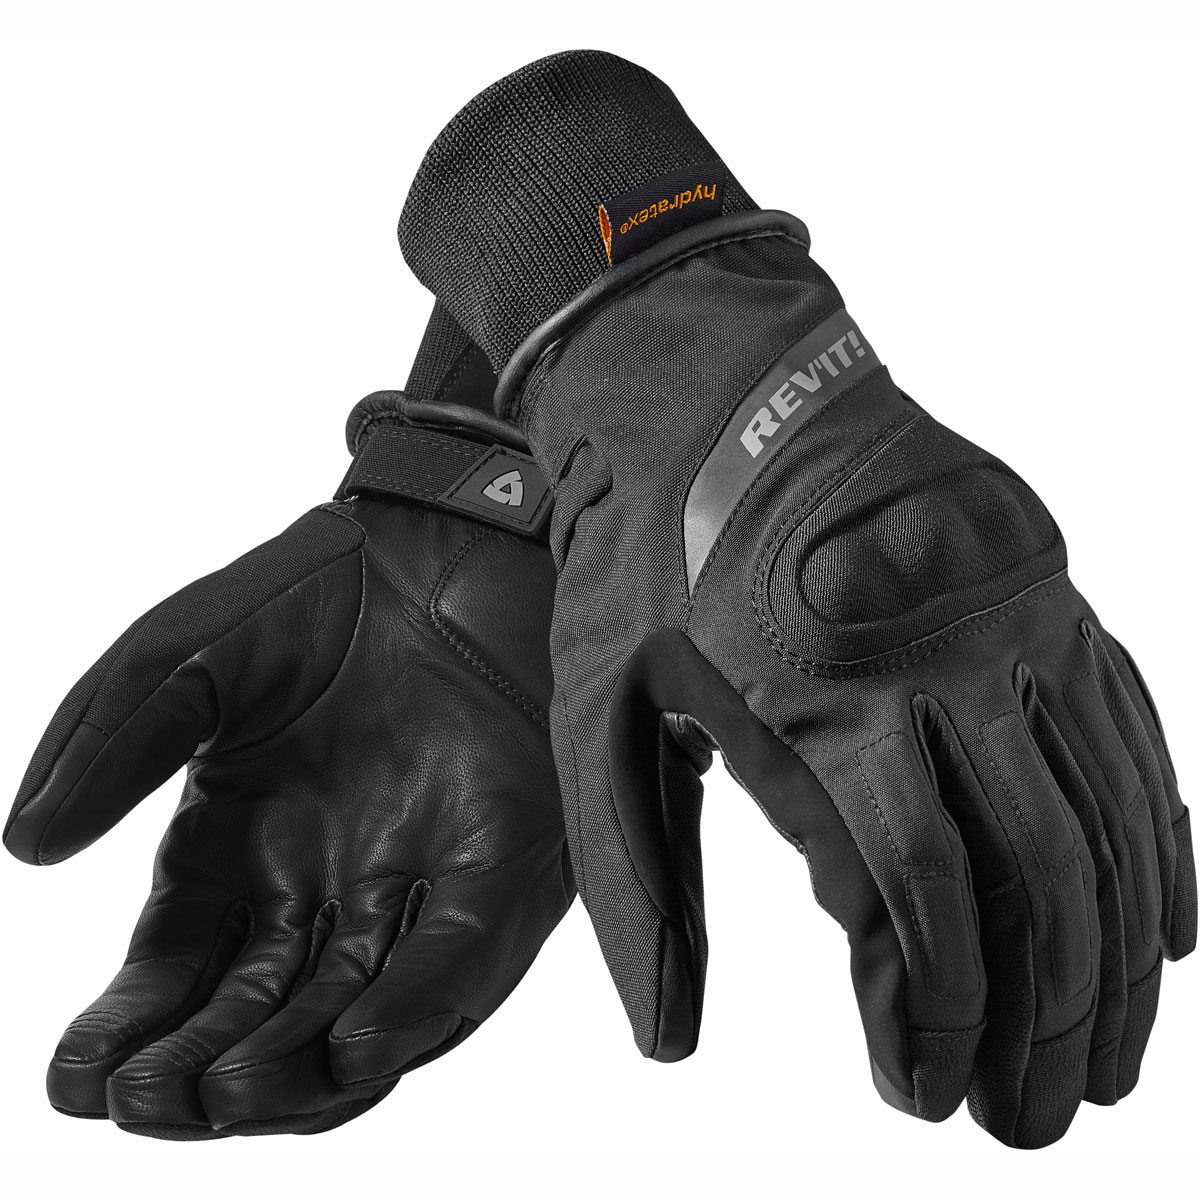 The Rev'it! Hydra Gloves